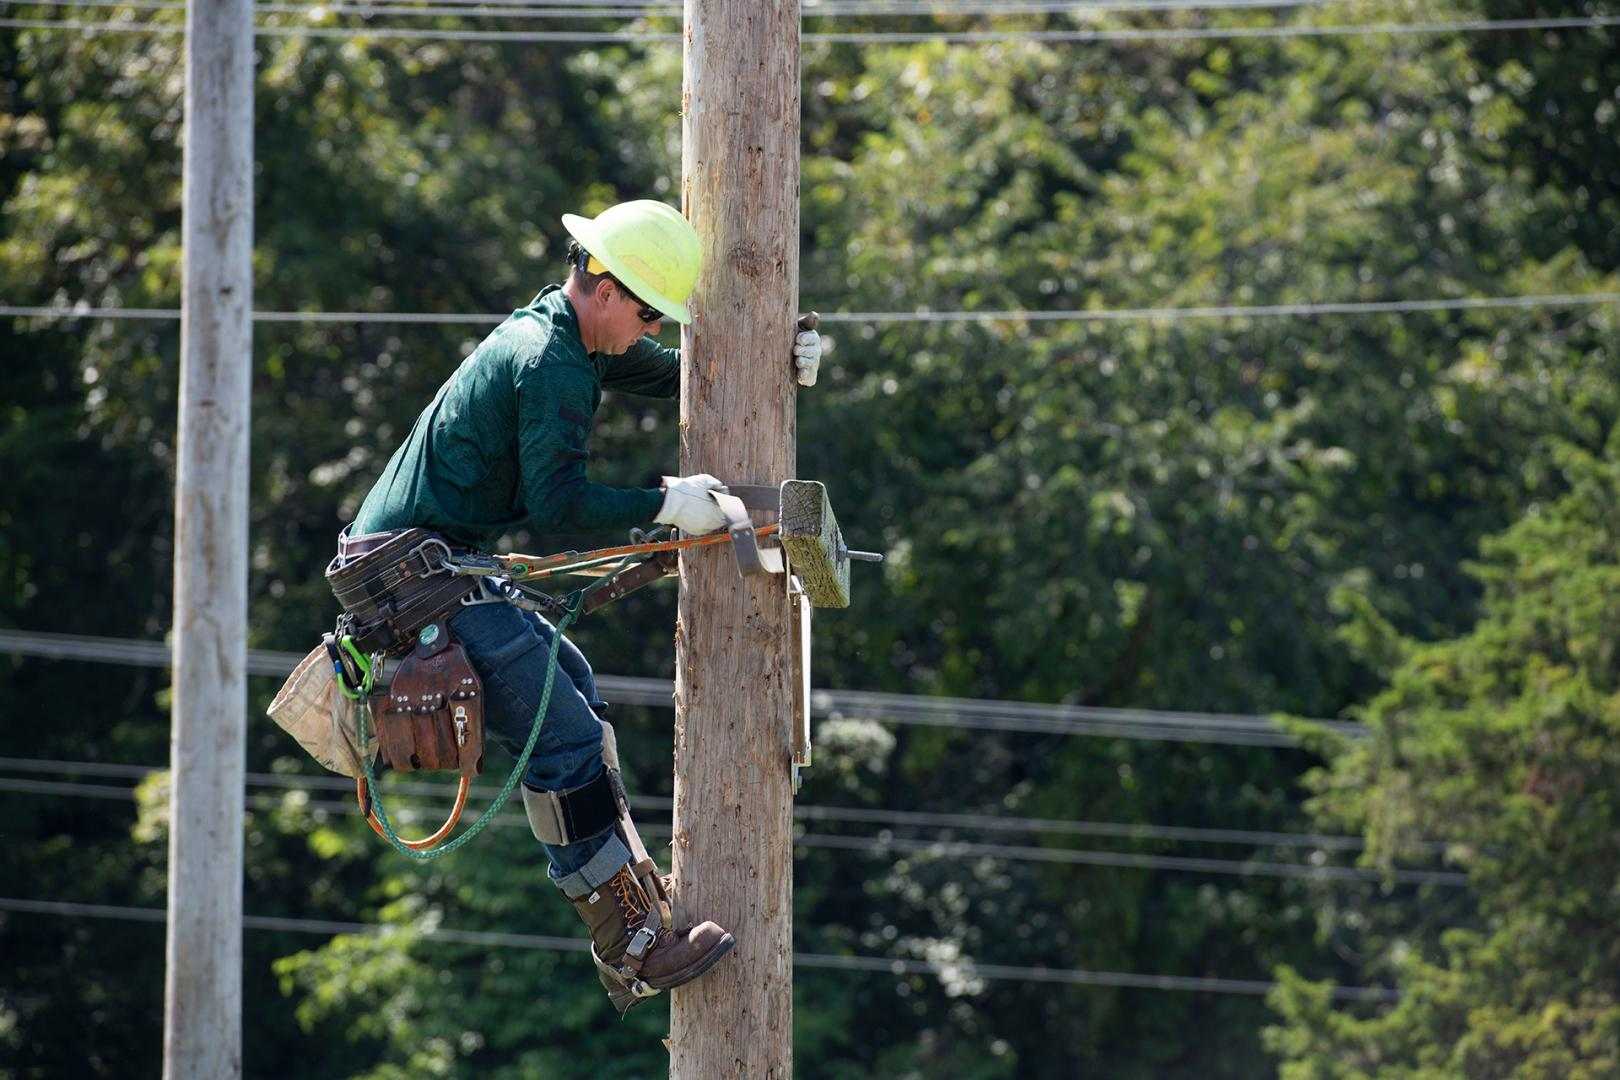 https://cvrec.com/sites/cvrec/files/2020-09/AMEC%20LINEMANS%20RODEO%20046%2020190904.jpg